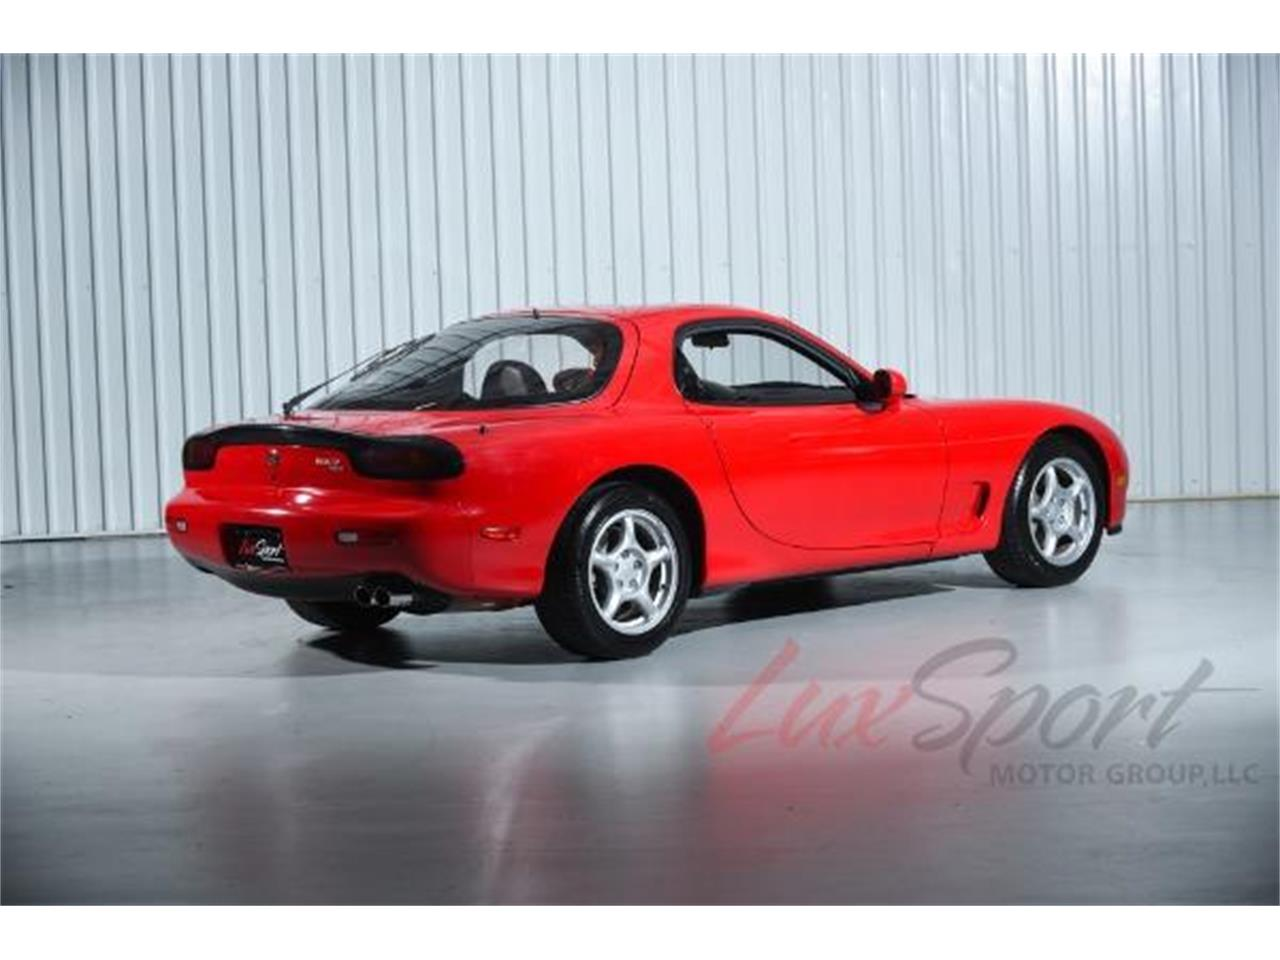 Large Picture of '93 Mazda RX-7 located in New Hyde Park New York - $34,995.00 Offered by LuxSport Motor Group, LLC - MO02